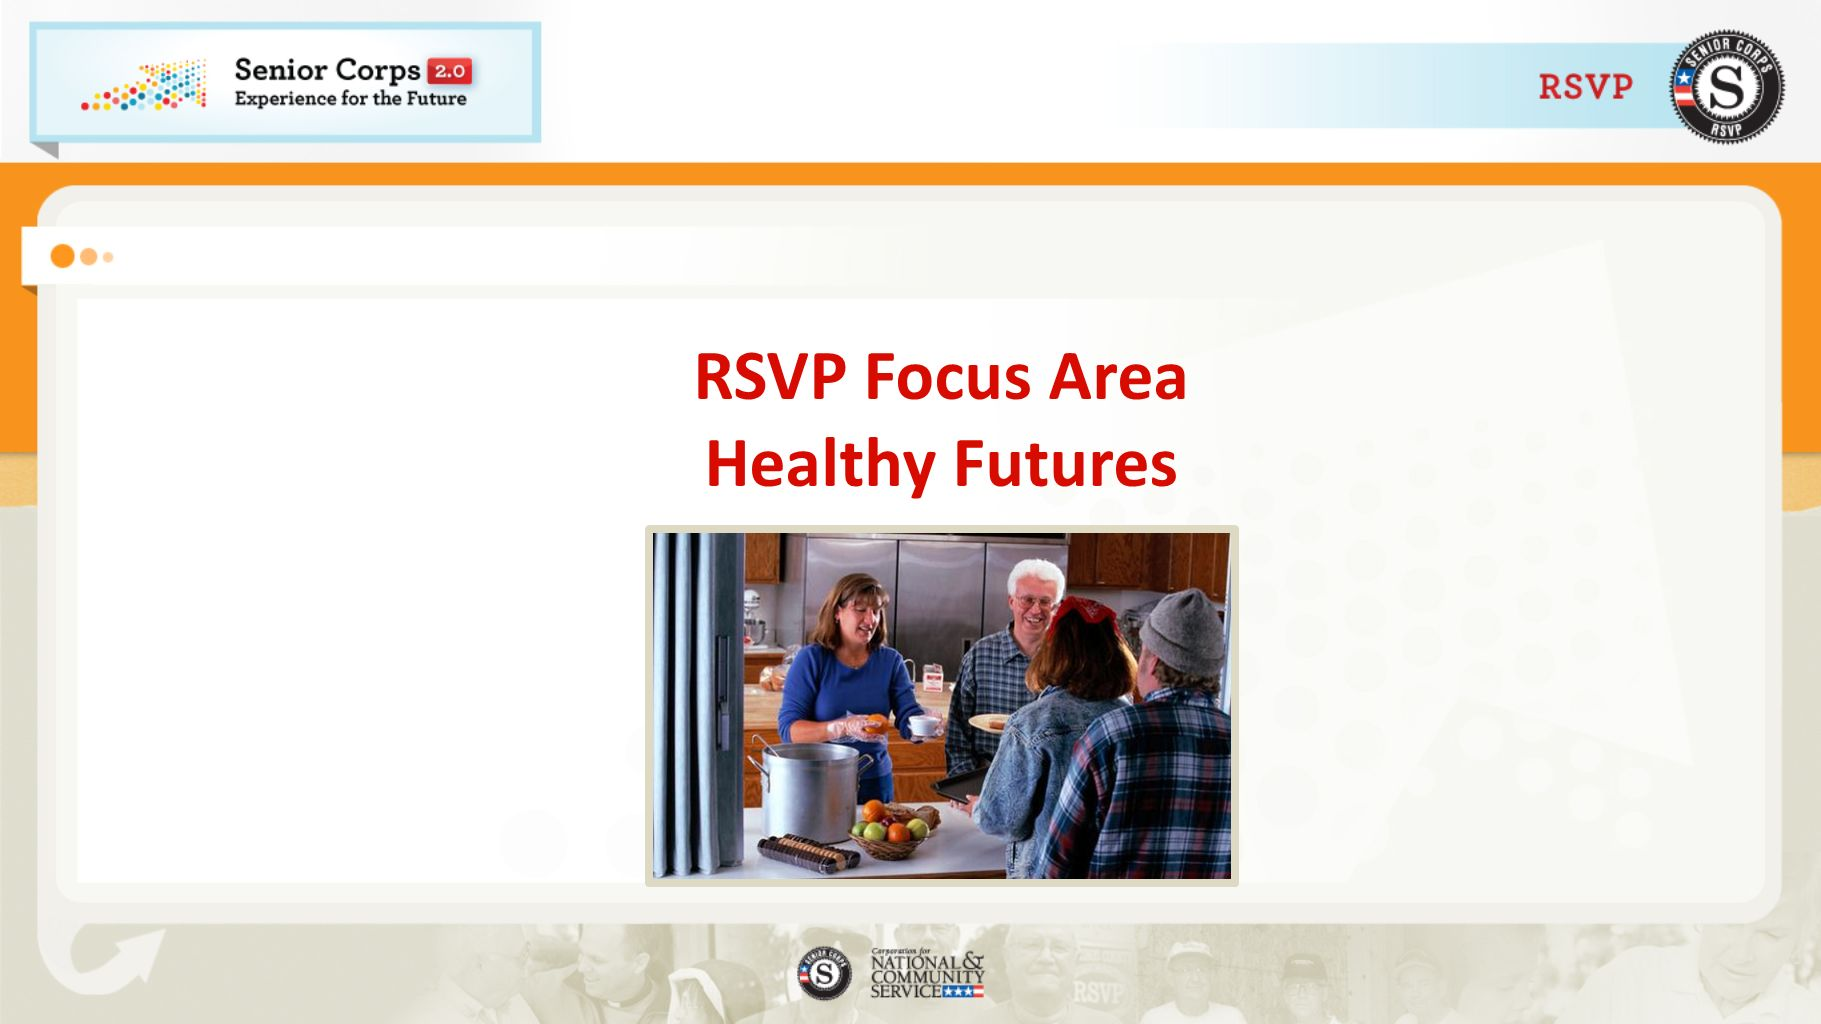 RSVP Focus Area Healthy Futures